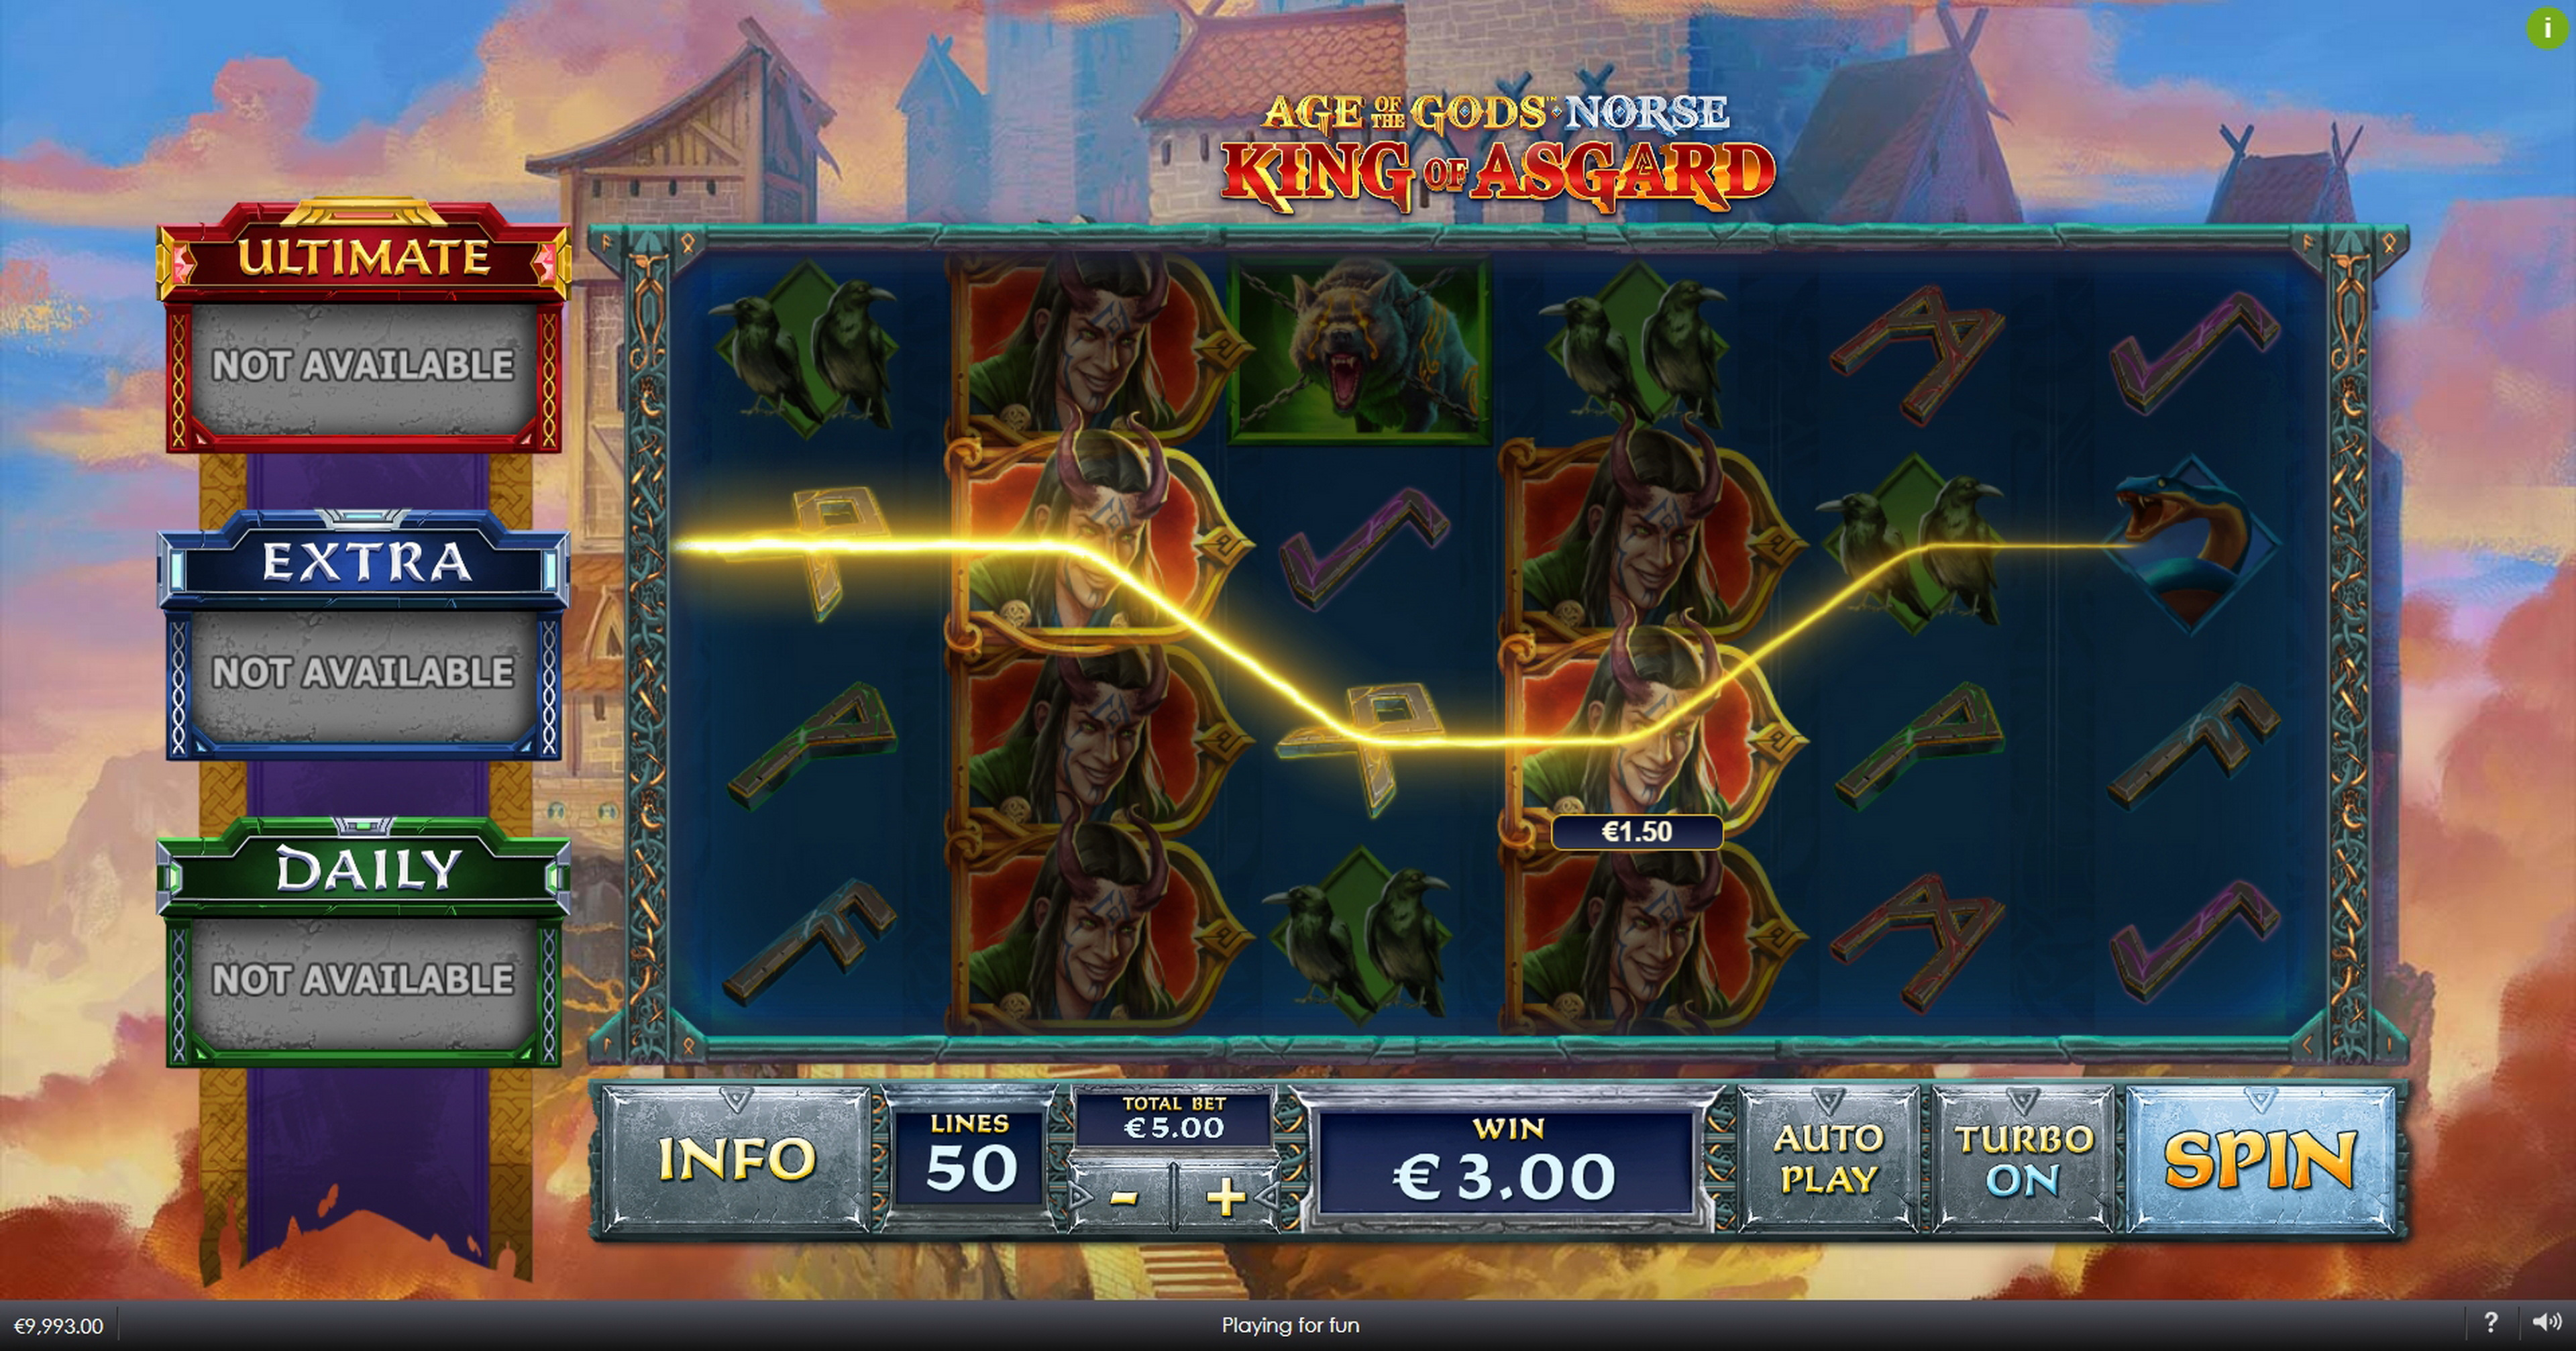 Win Money in Age of the Gods Norse King of Asgard Free Slot Game by Ash Gaming